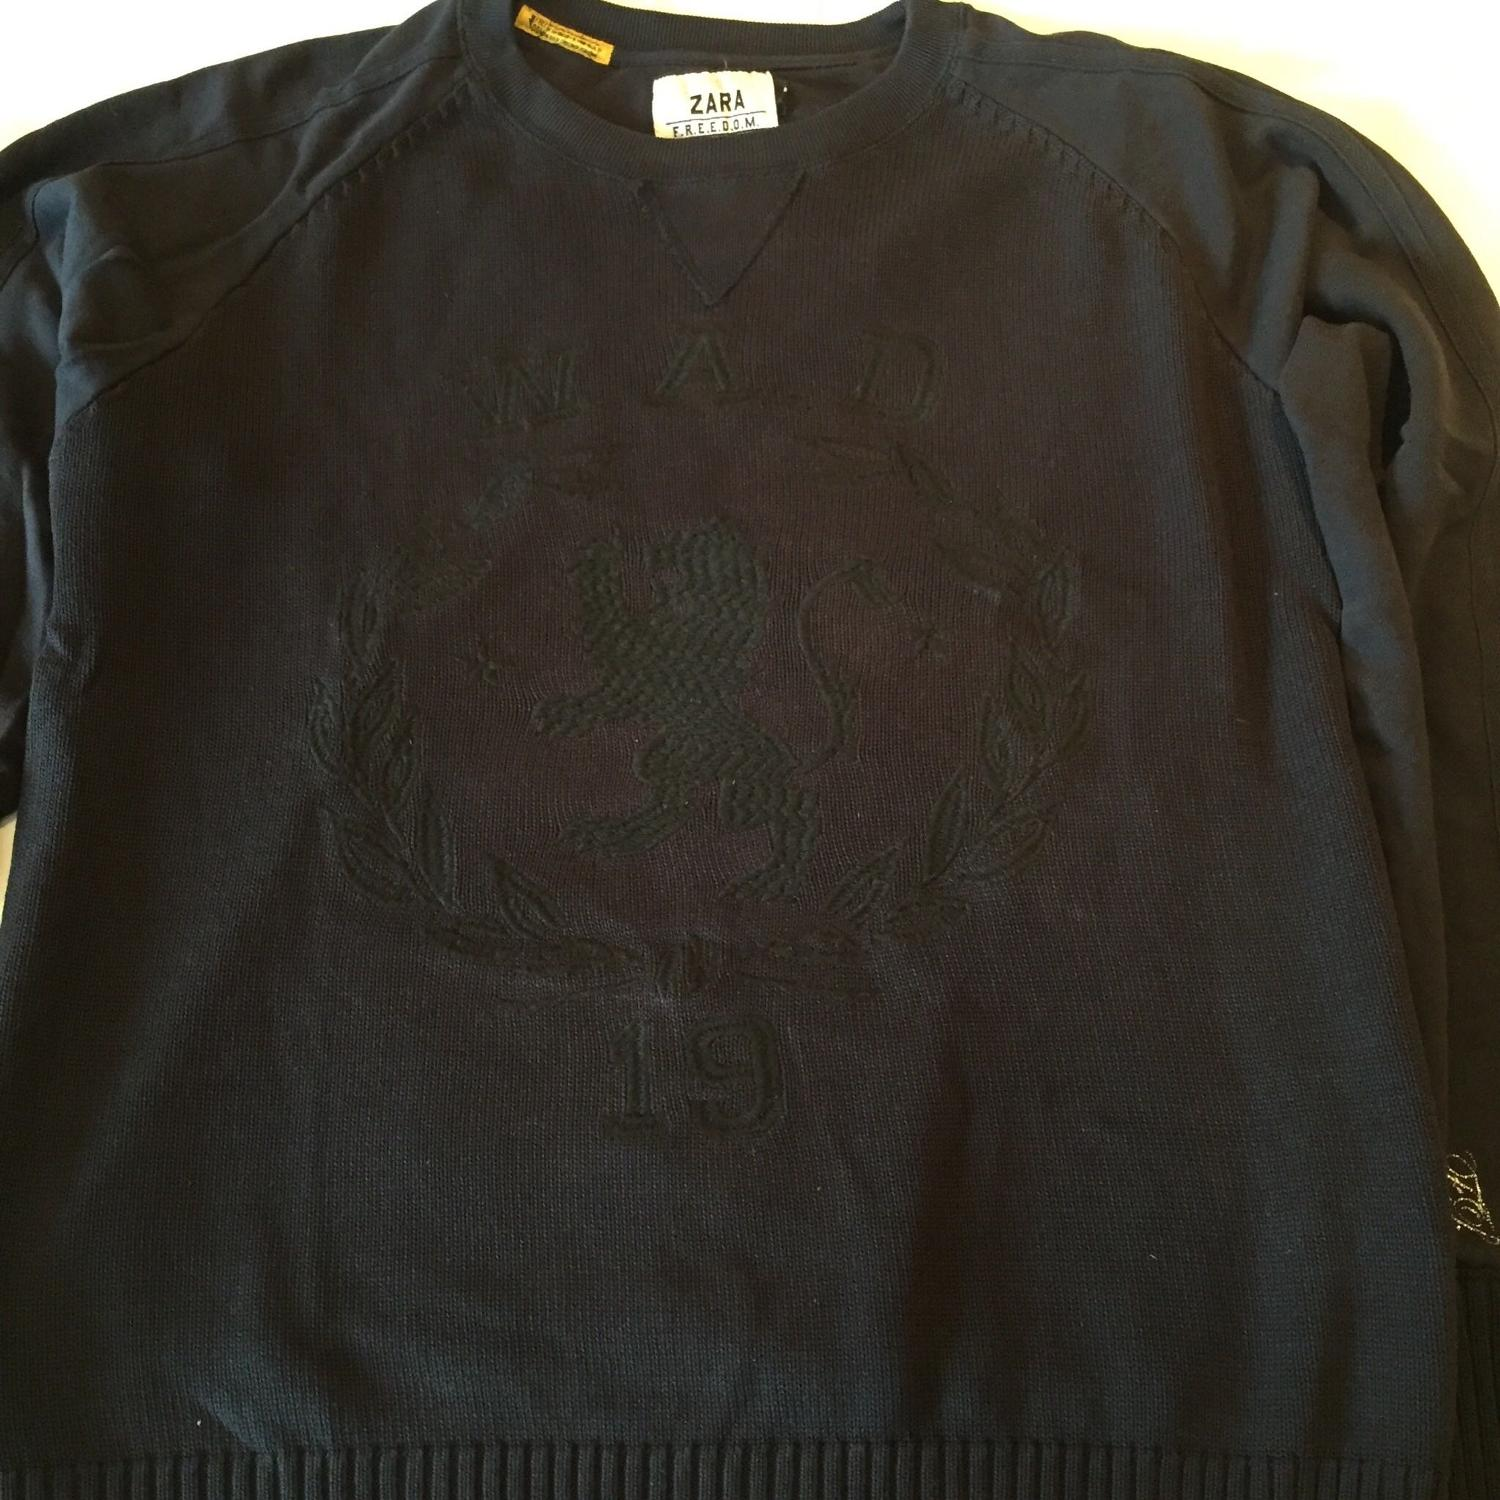 6b20a266 Best Men's Zara Navy Blue Sweater With Tone On Tone Embroidery. for sale in  Dollard-Des Ormeaux, Quebec for 2019